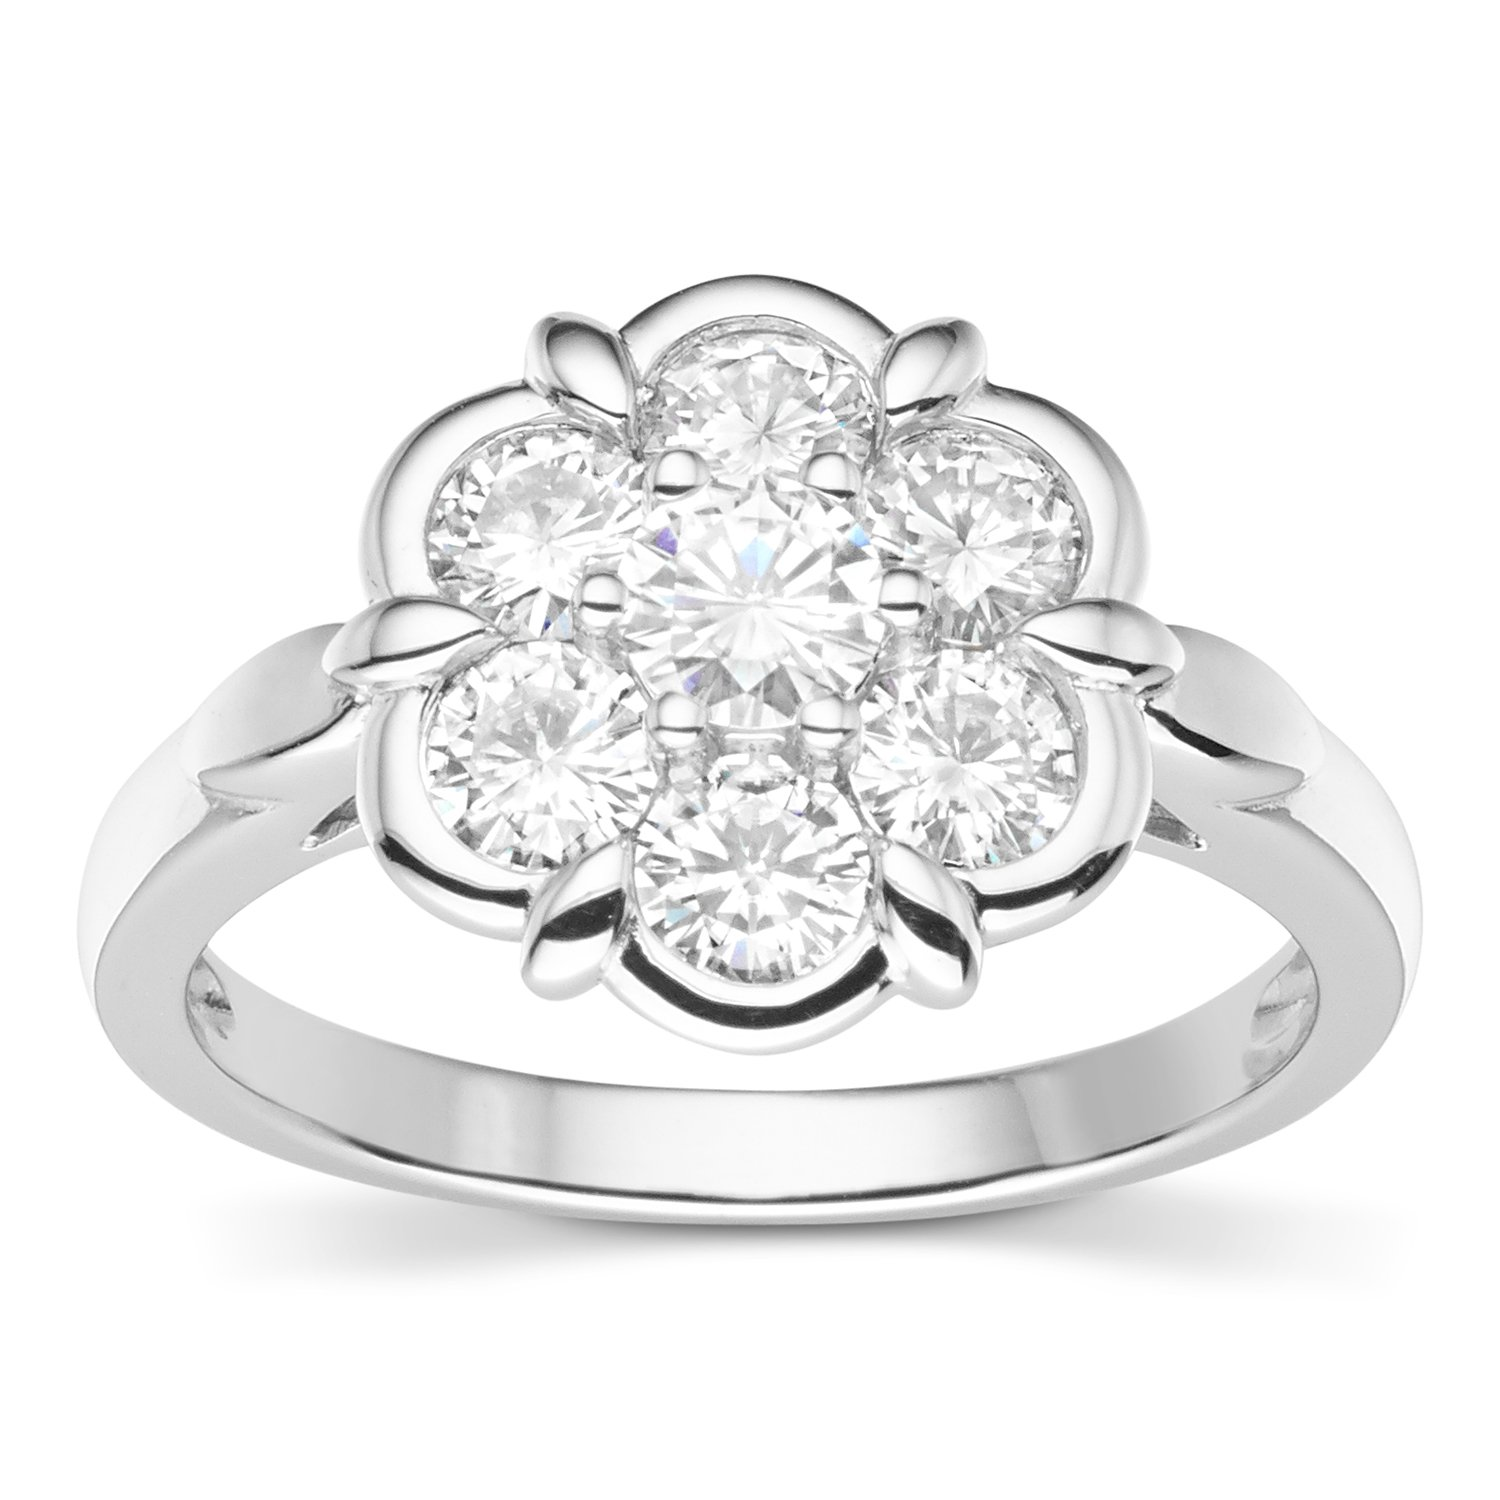 Forever Classic Round Cut 4.0mm Moissanite Flower Ring-size 7, 1.19cttw DEW By Charles & Colvard by Charles & Colvard